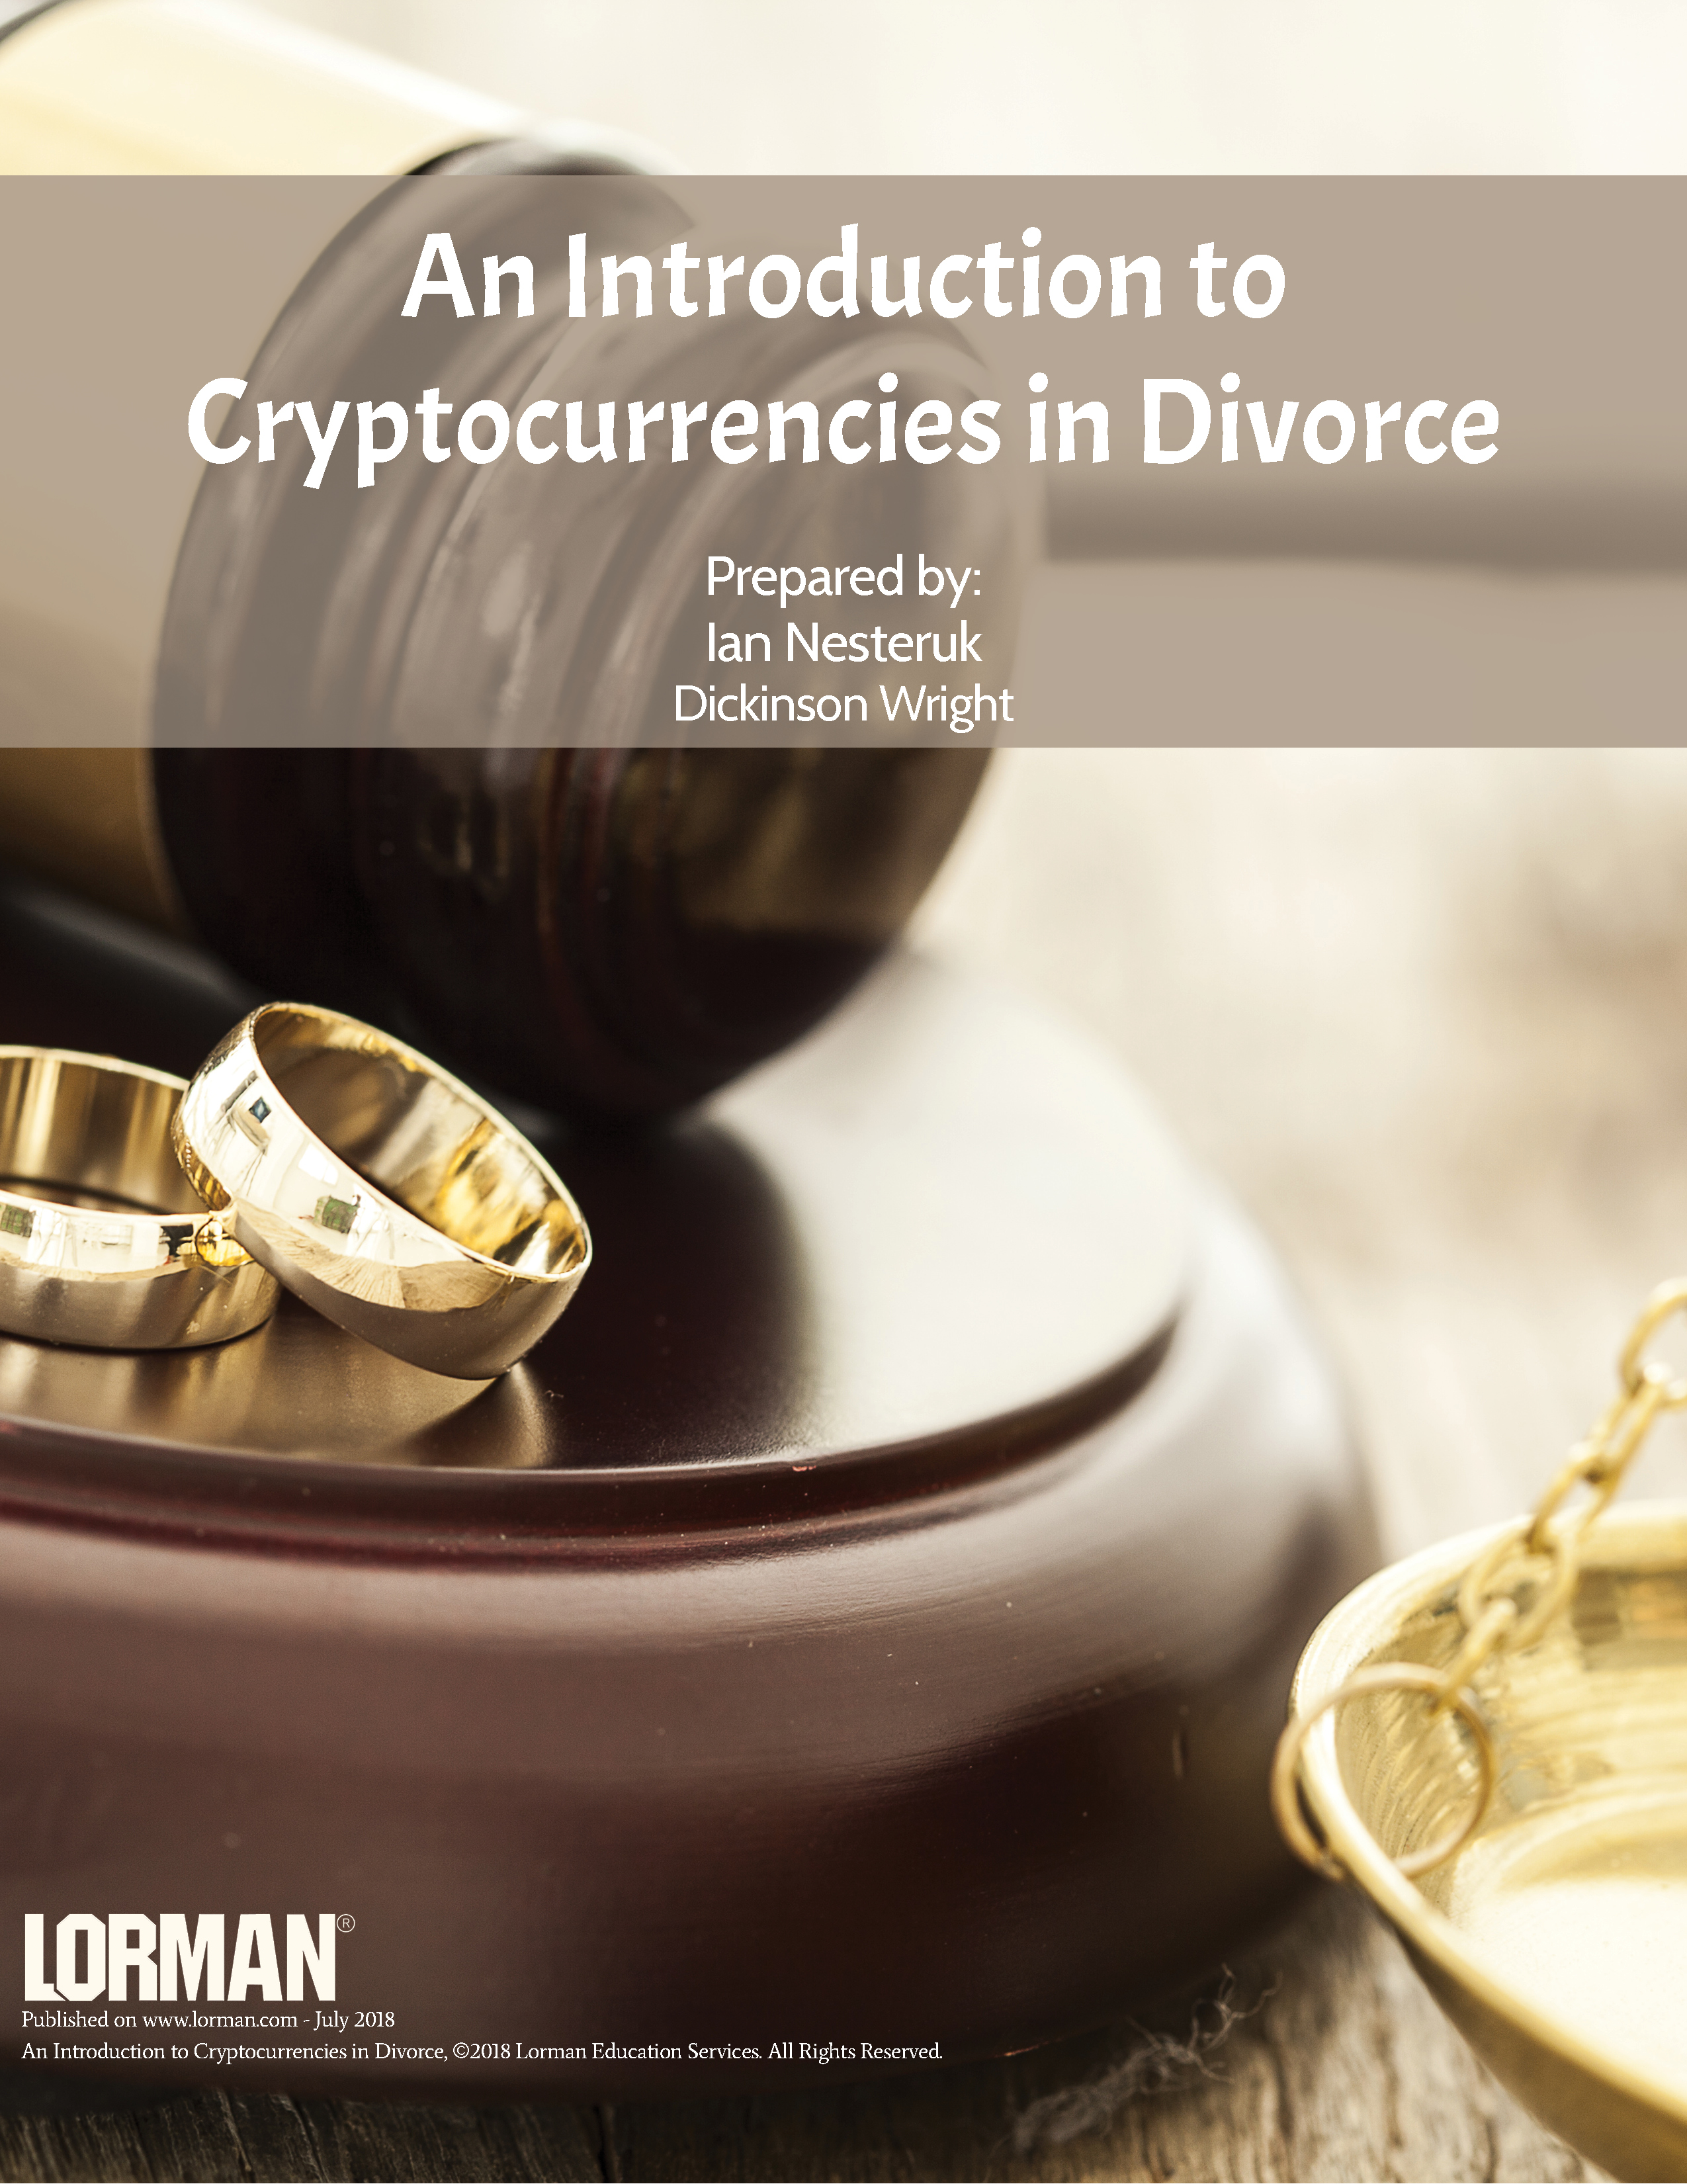 An Introduction to Cryptocurrencies in Divorce